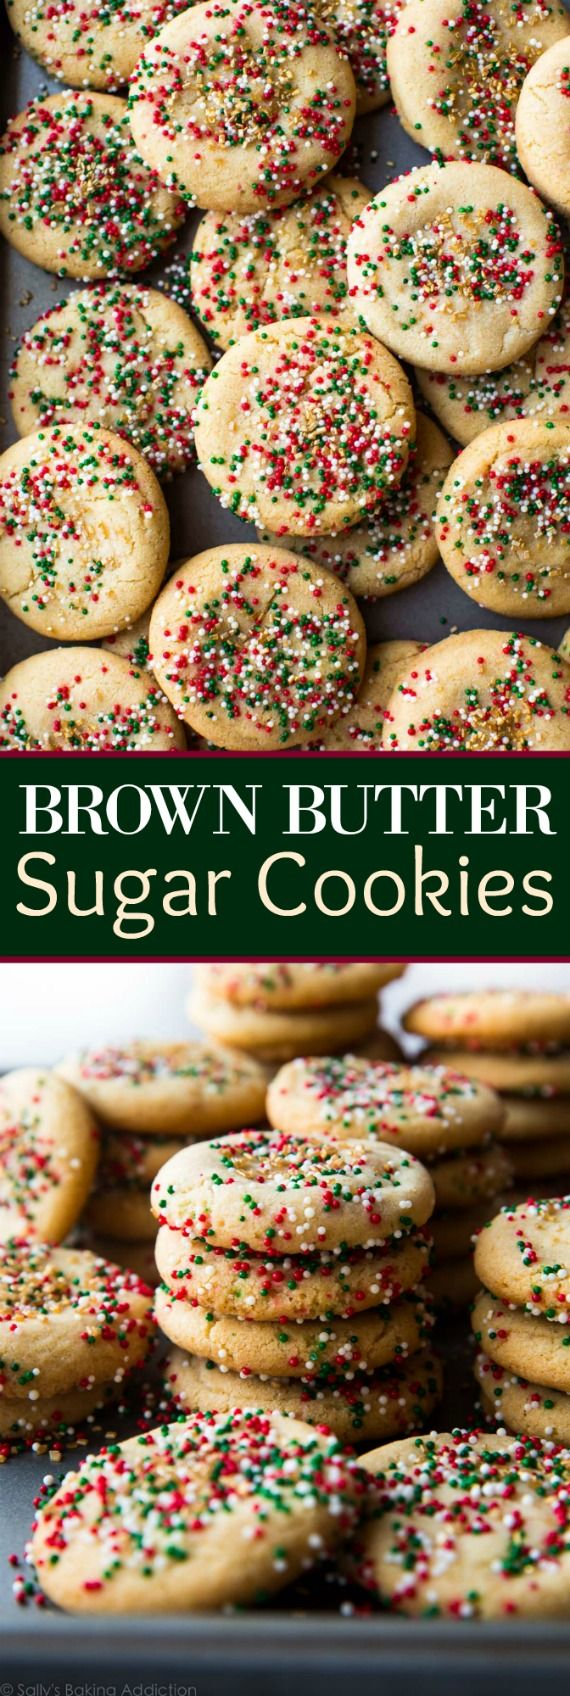 218 best images about cookies on pinterest for Easy quick christmas baking recipes